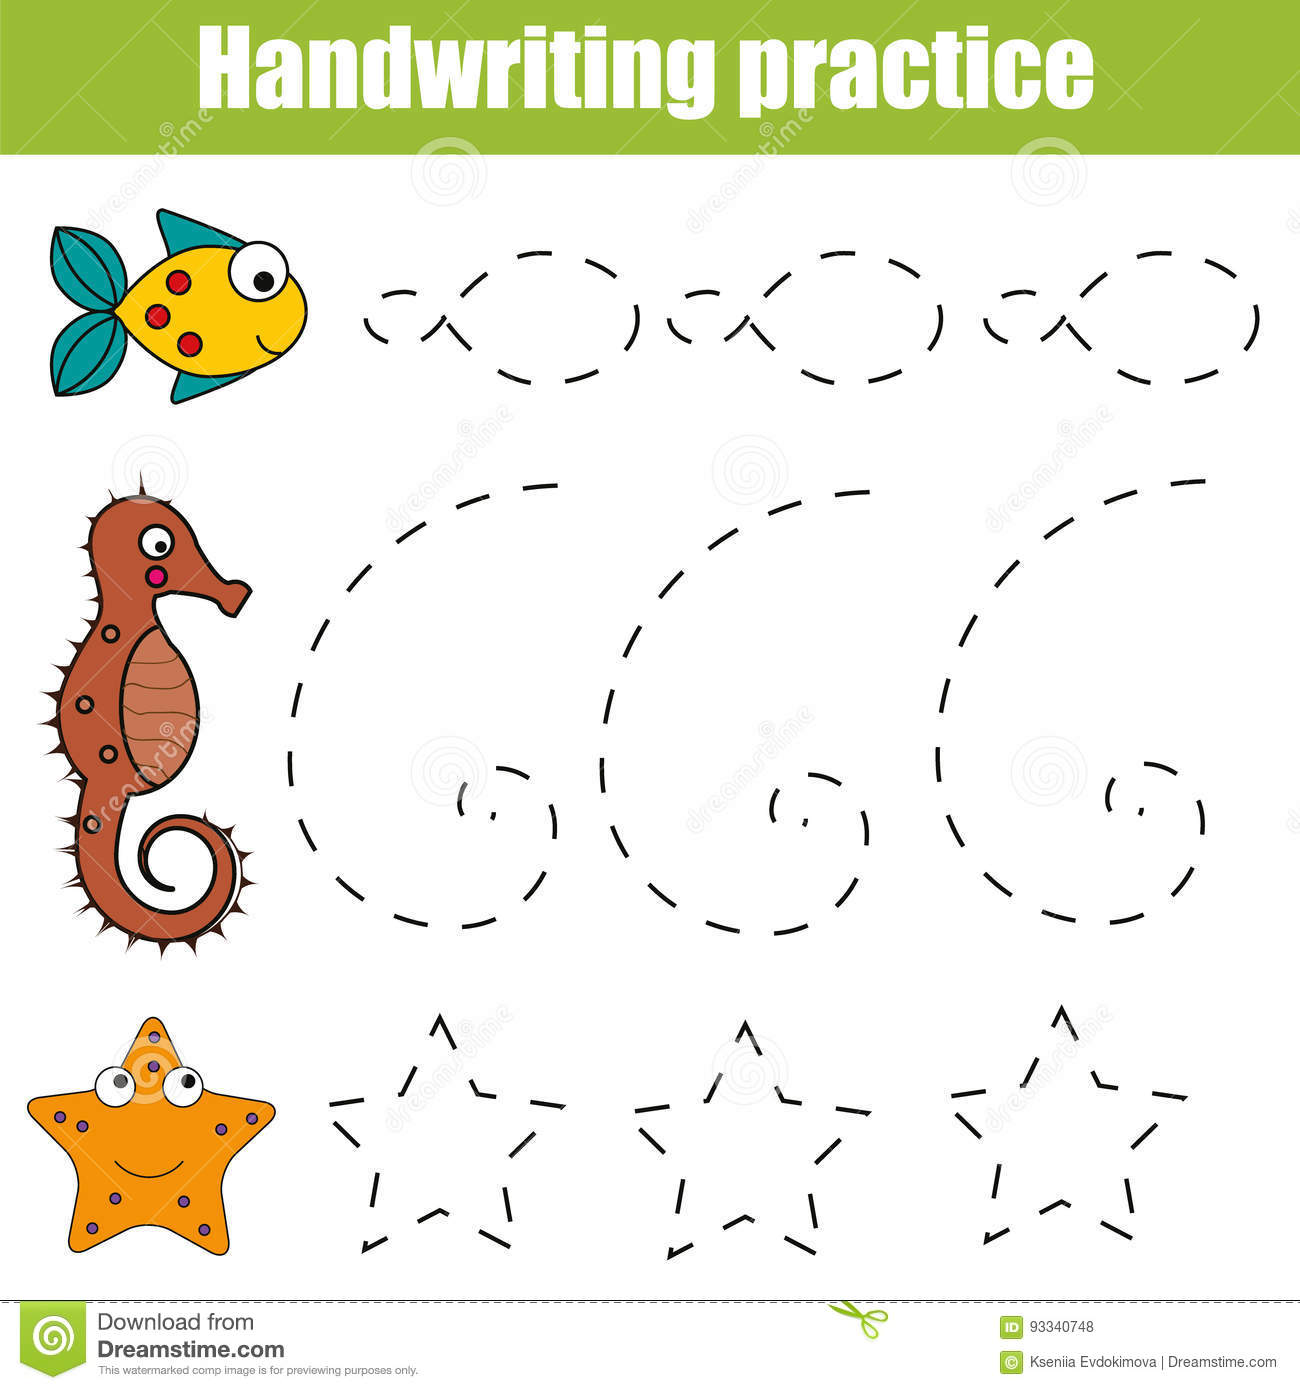 Handwriting Practice Sheet Educational Children Game Printable Worksheet For Kids With Shapes